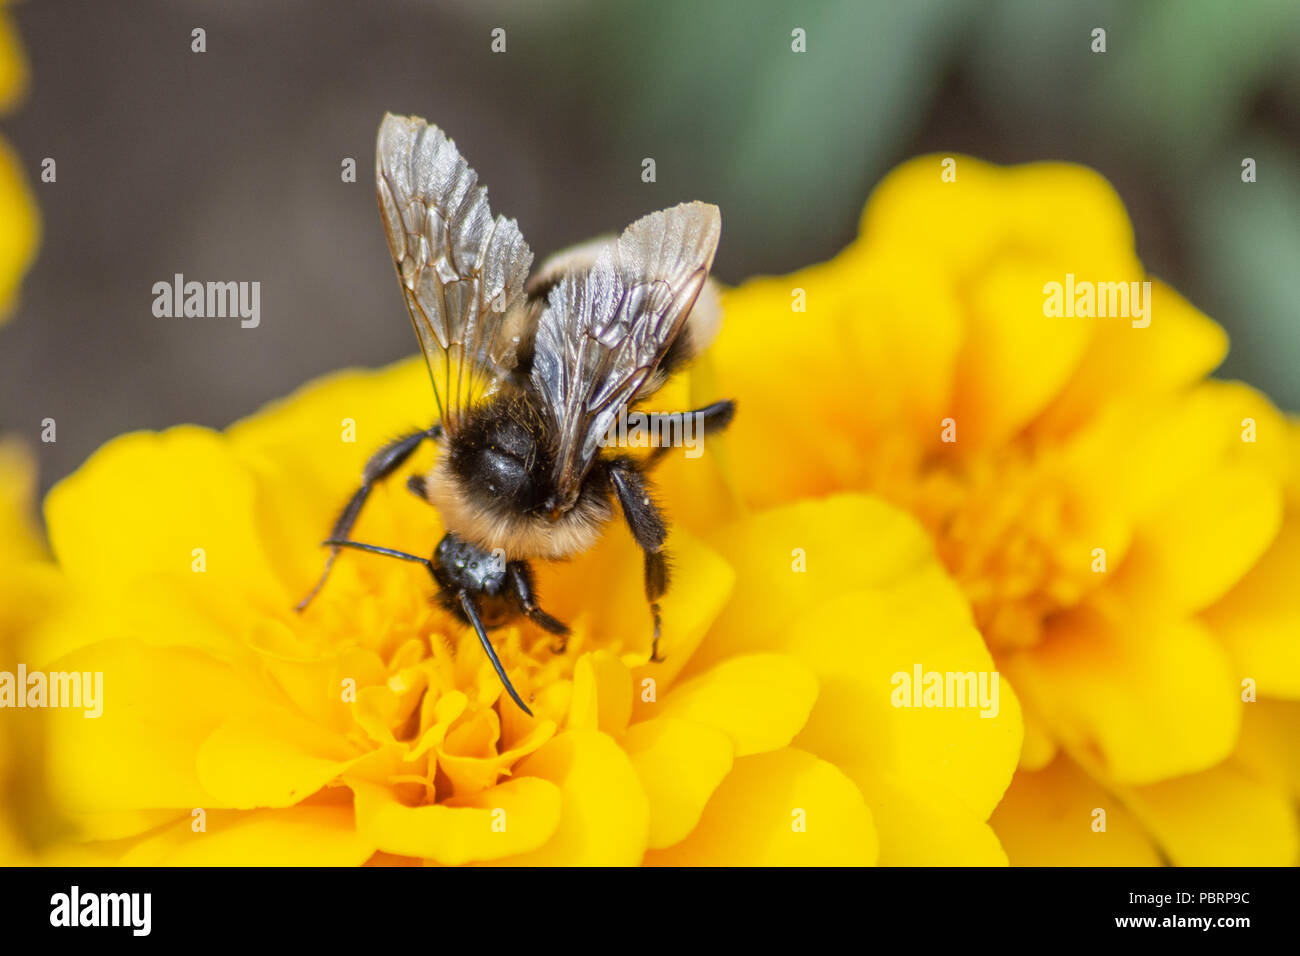 Gypsy's cuckoo bumblebee  Bombus bohemicus feeding on nectar from a yellow marigold flower in Trowbridge Town park - Stock Image